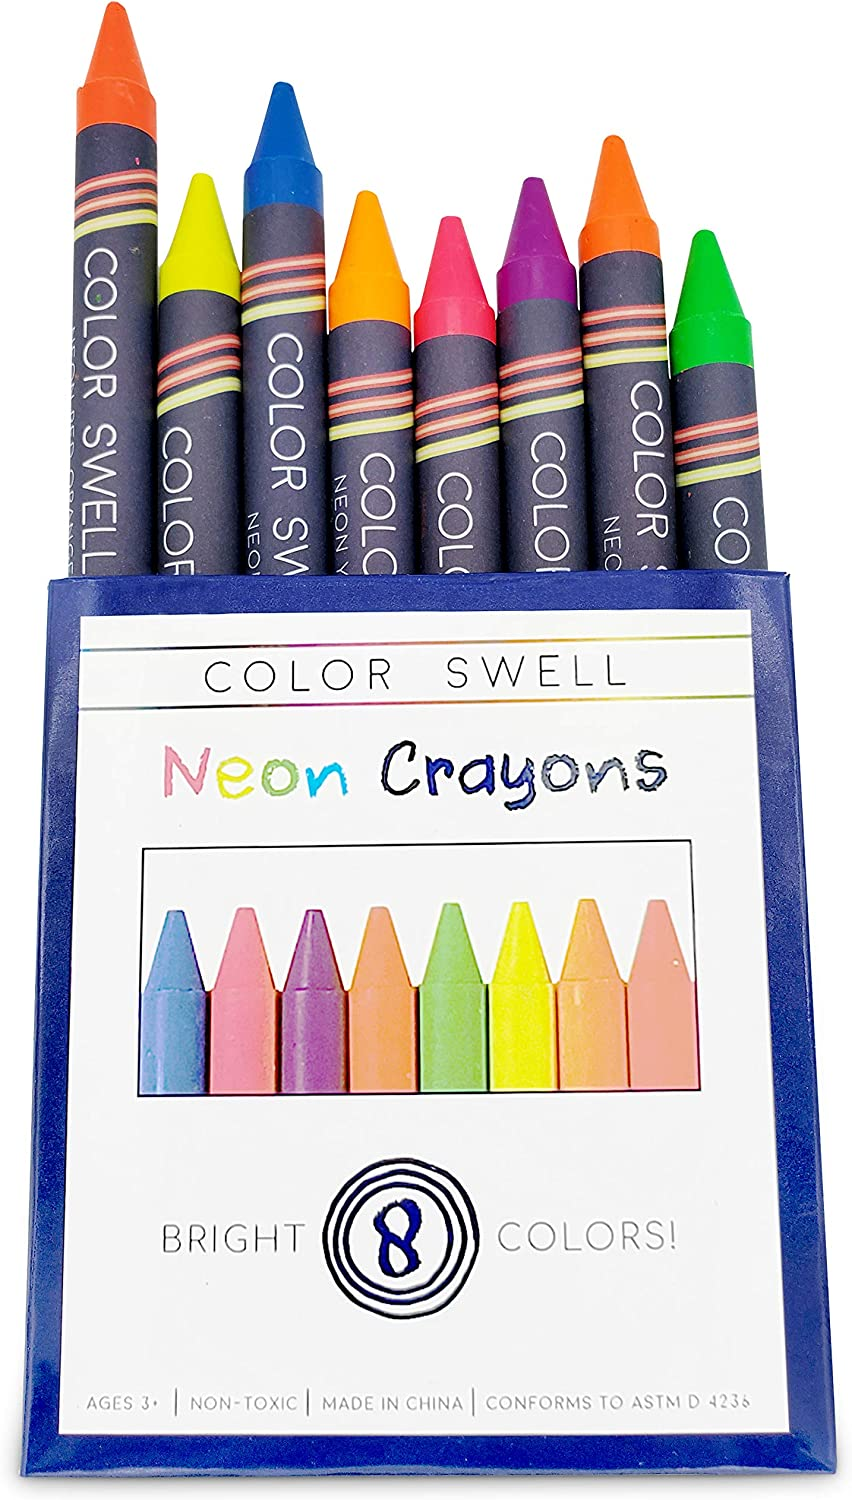 2 Boxes of Fun Neon Crayons of Teacher Quality Durable Classroom Packs for Kids Students Party Favors Color Swell Neon Crayon Bulk Packs